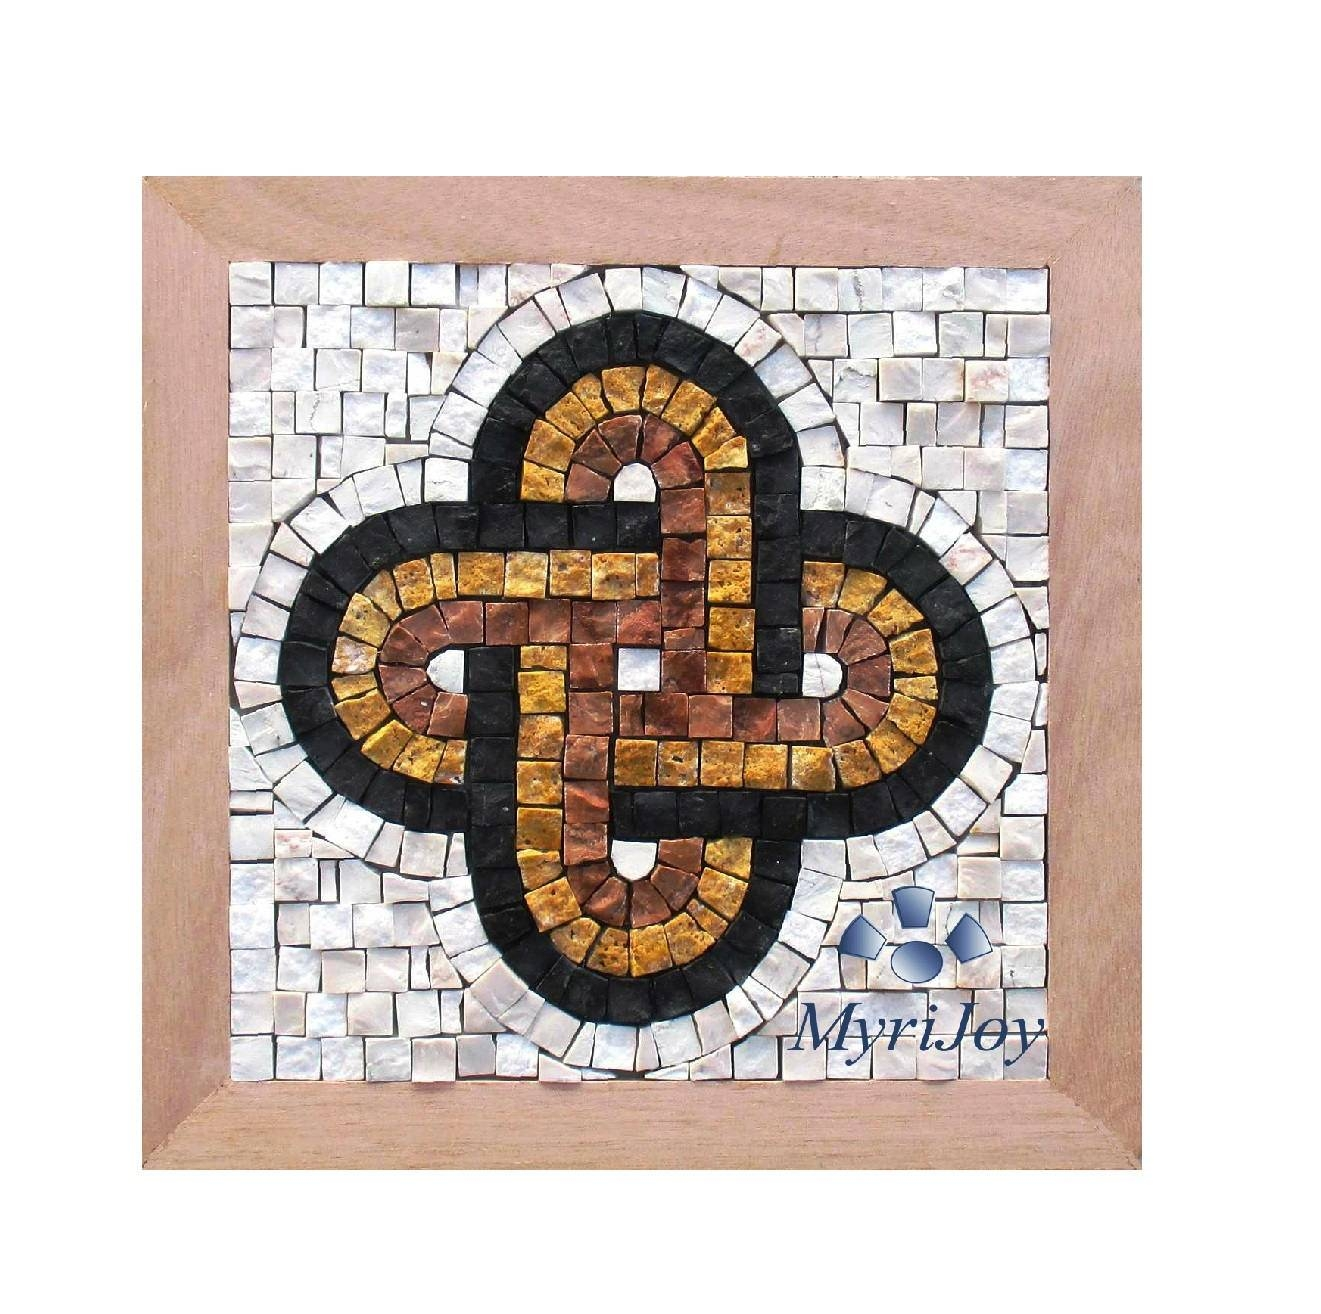 "Anniversary Diy Gift Mosaic Kit Solomon's Knot 9""x9"" Mosaic Wall Pertaining To Newest Mosaic Art Kits For Adults (View 4 of 20)"